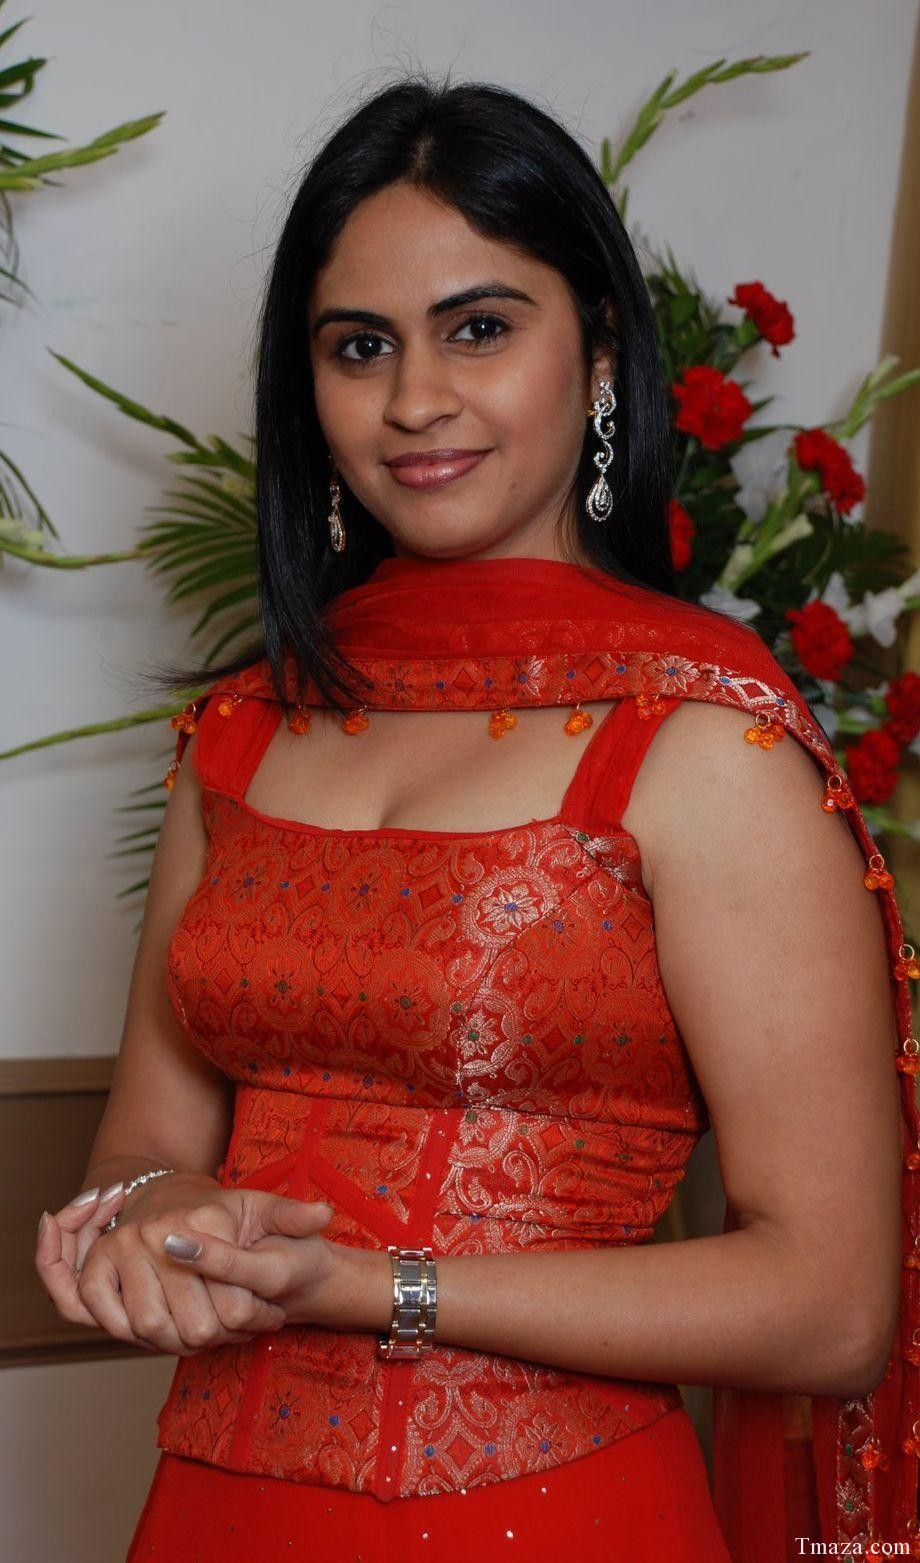 Tamil Pundai Mallu Hot Photos Aunty Photo - Celebrity -8716